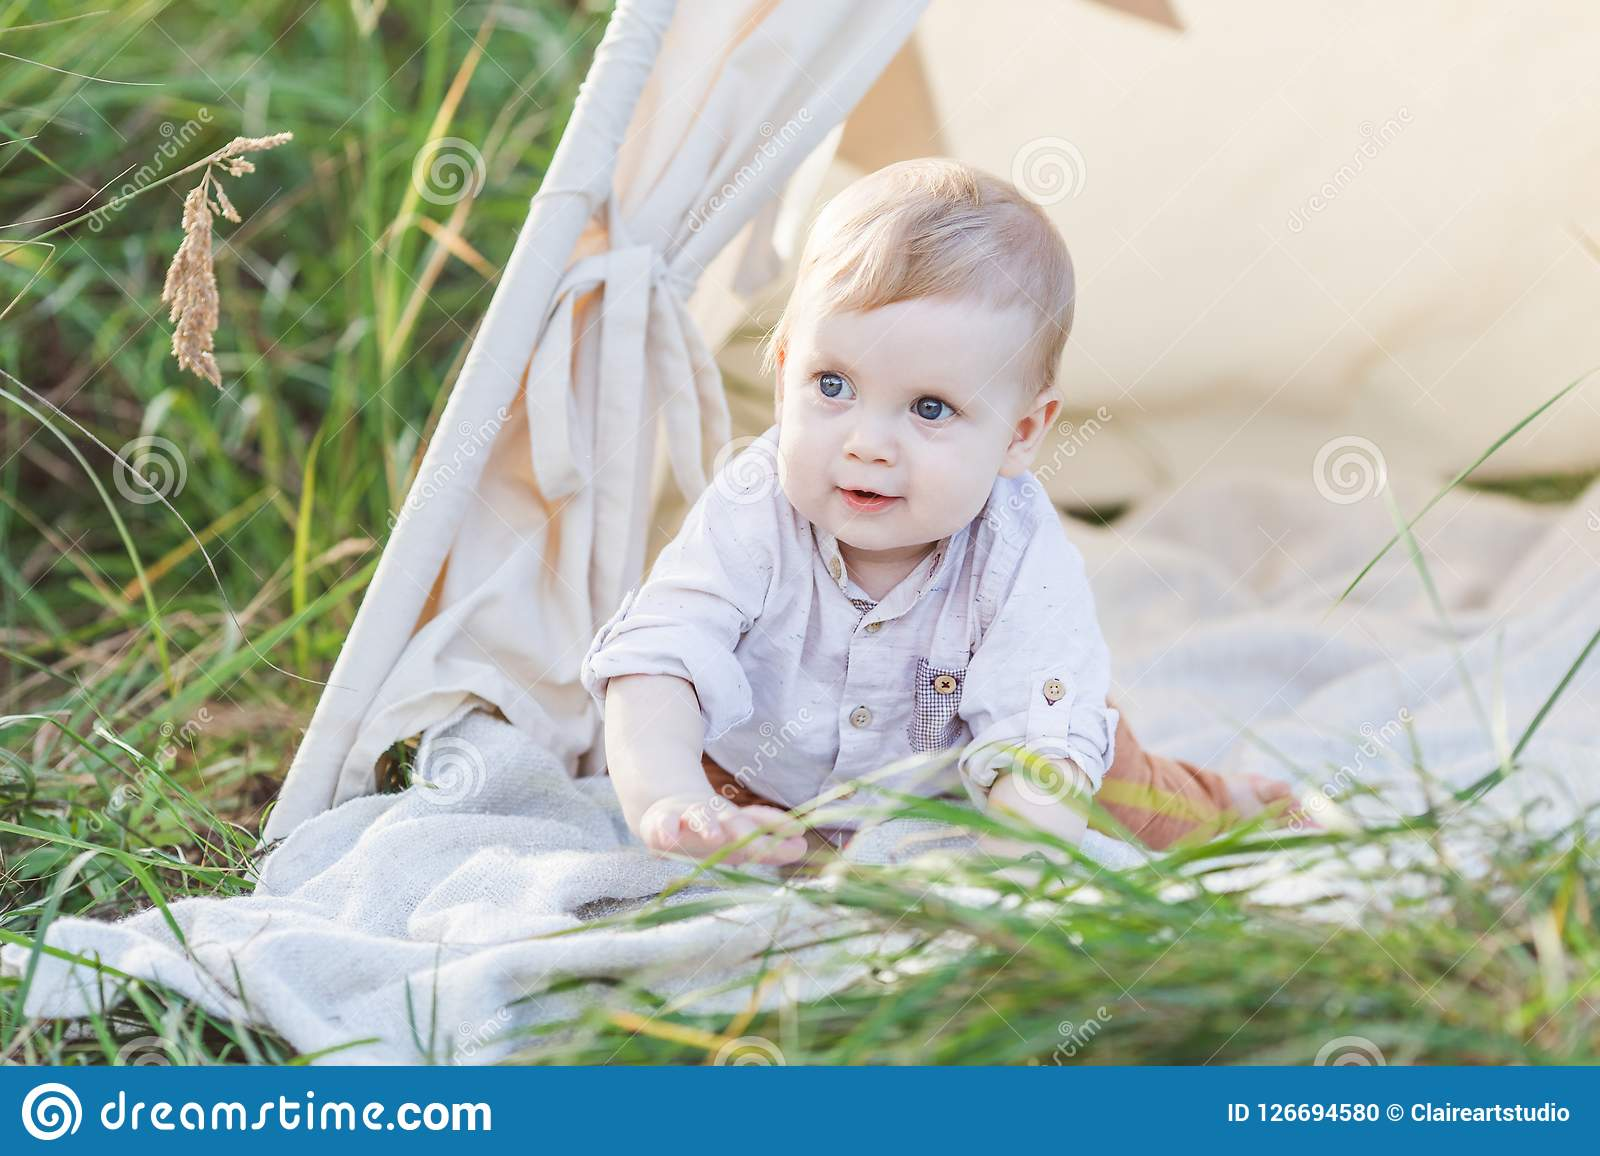 online store 2db86 28af8 One Year Cute Boy In A Teepee Outdoors. Stock Photo - Image ...